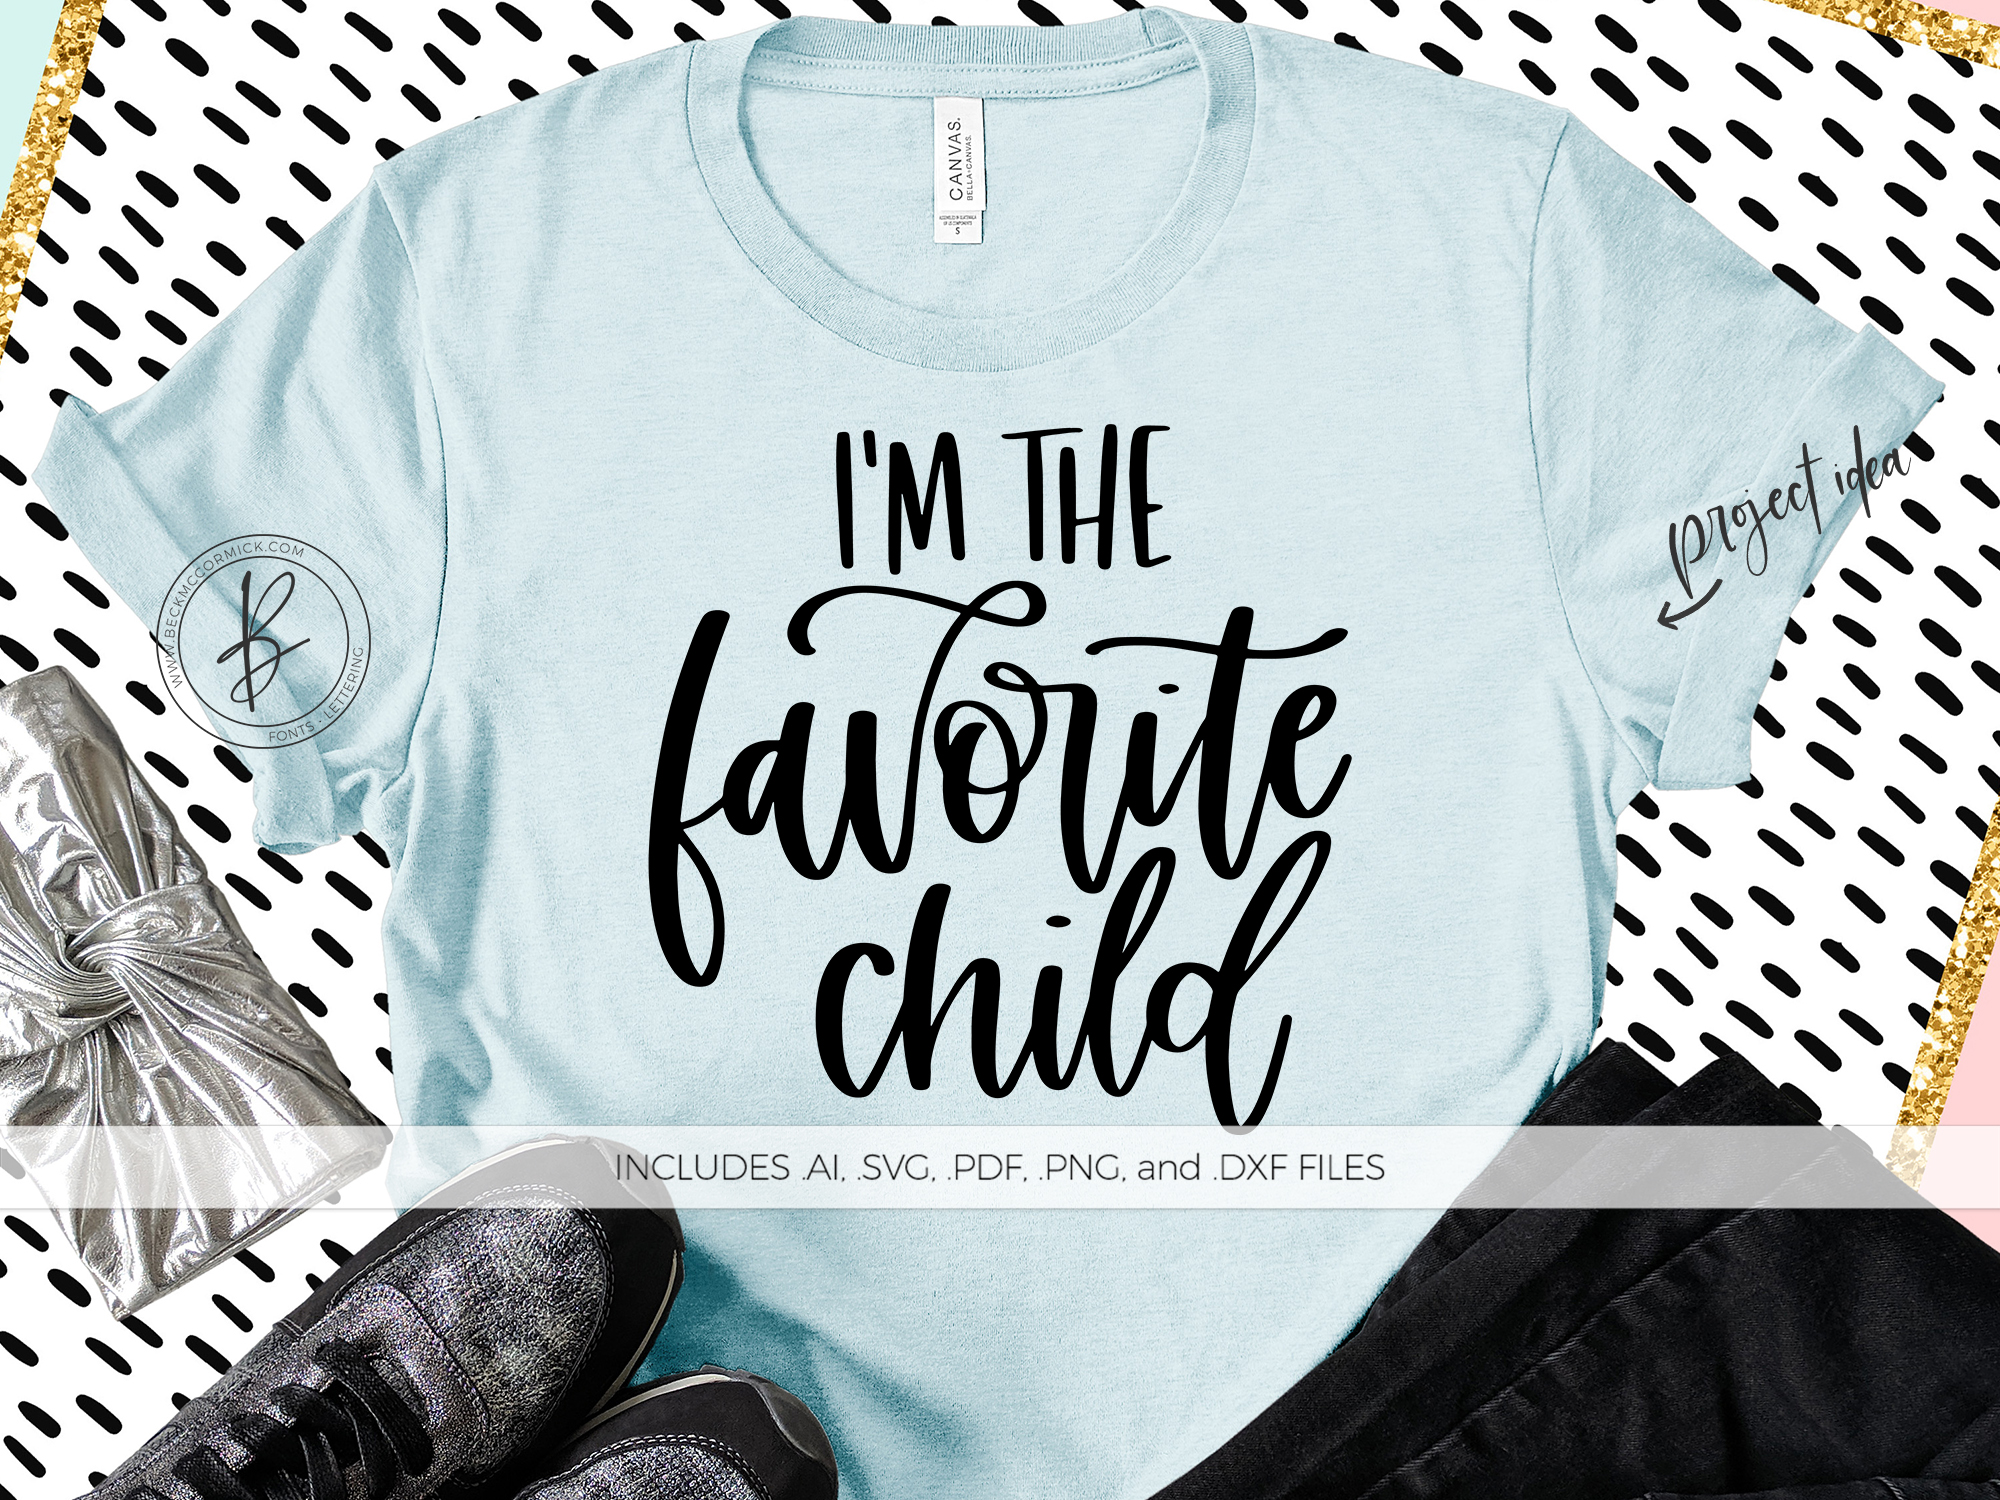 Download Free I M The Favorite Child Graphic By Beckmccormick Creative Fabrica for Cricut Explore, Silhouette and other cutting machines.